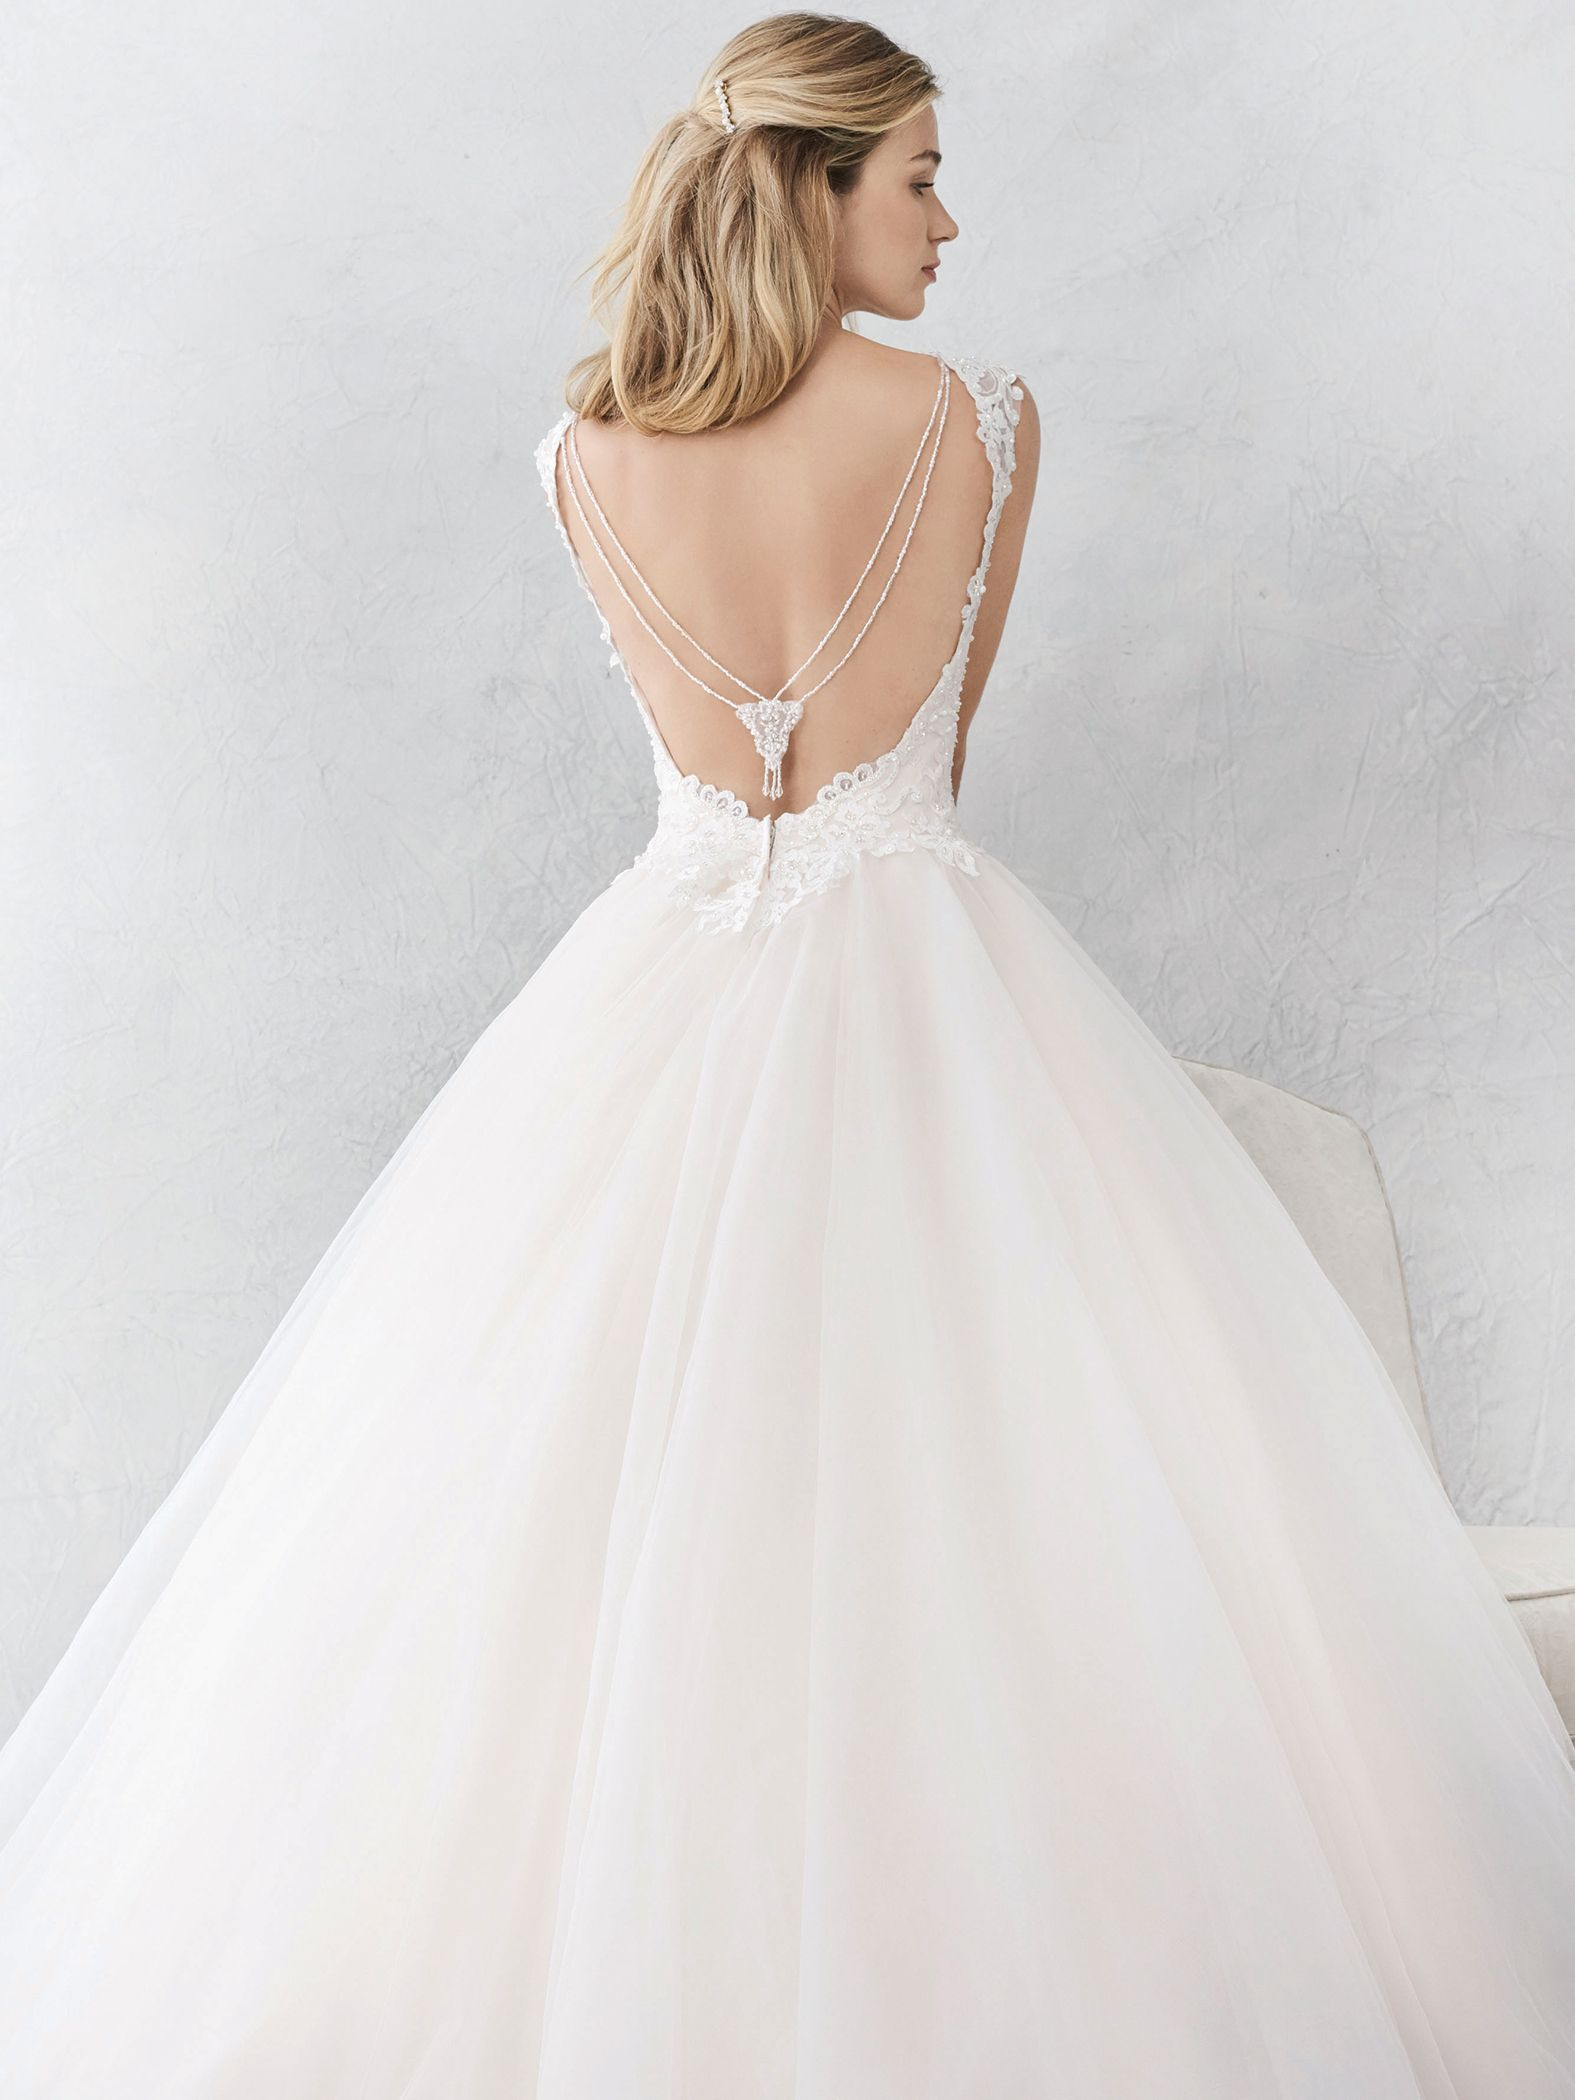 Ella Rosa Style Be381 Unique Low Back With Hanging Beaded Accent Romantic Wedding Dress Br Wedding Gown Backless Wedding Dresses Wedding Dresses Romantic